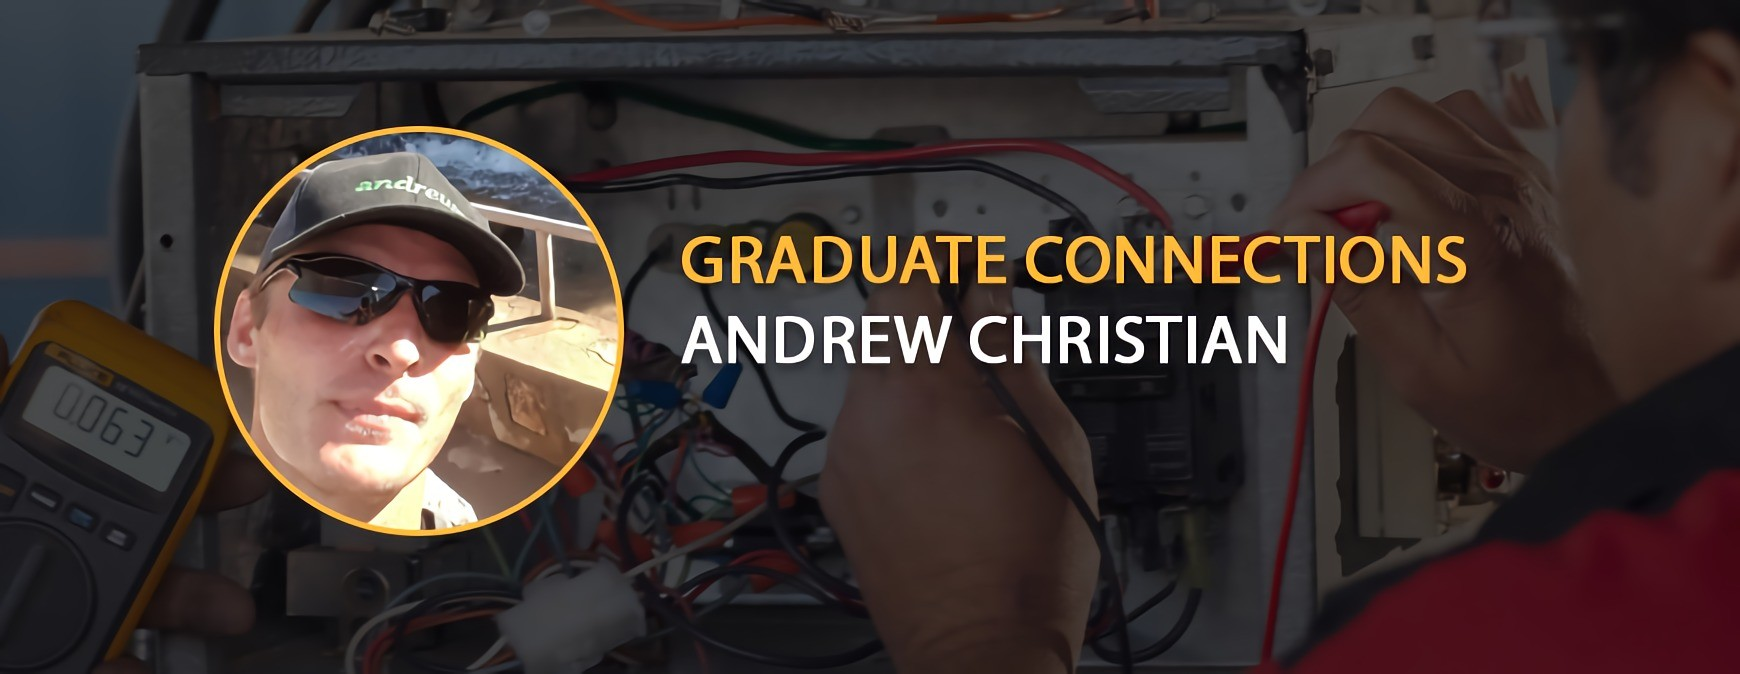 Andrew Christian Graduate Connection